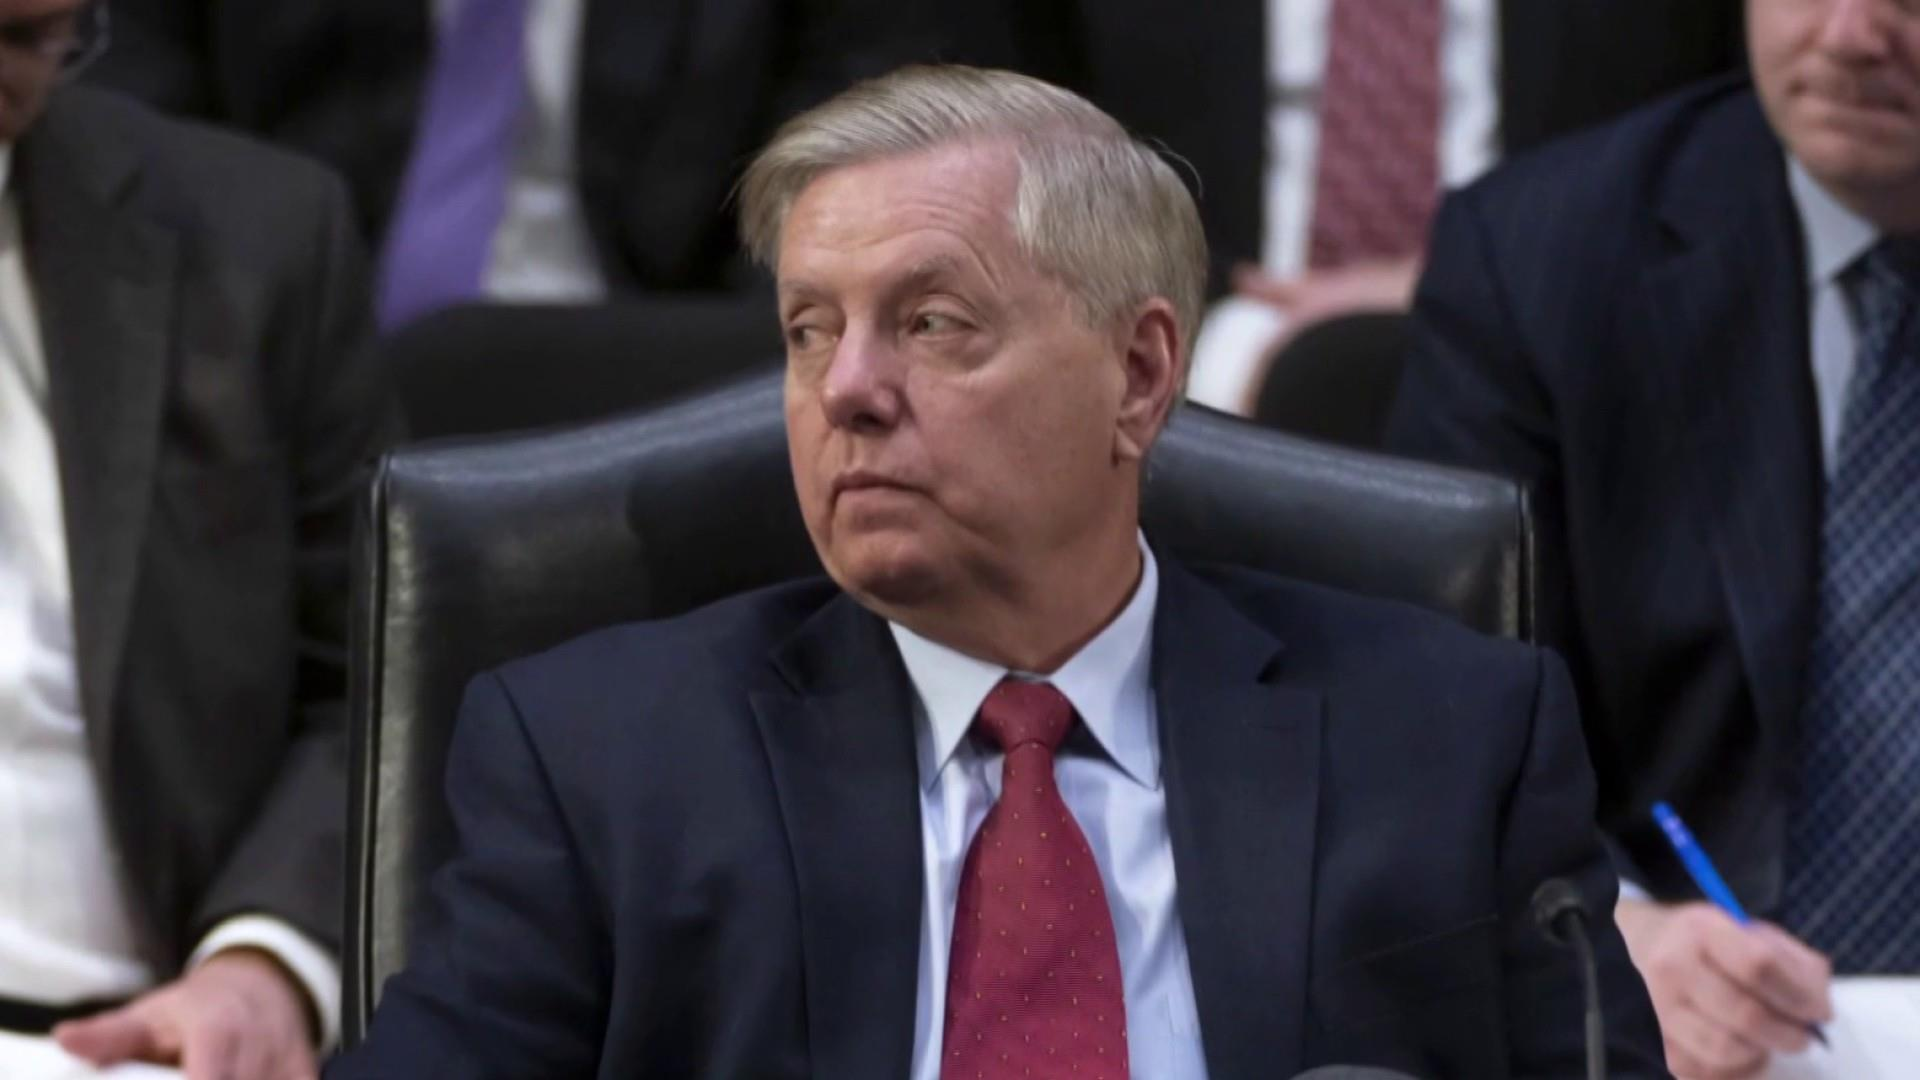 Could Lindsey Graham lose?